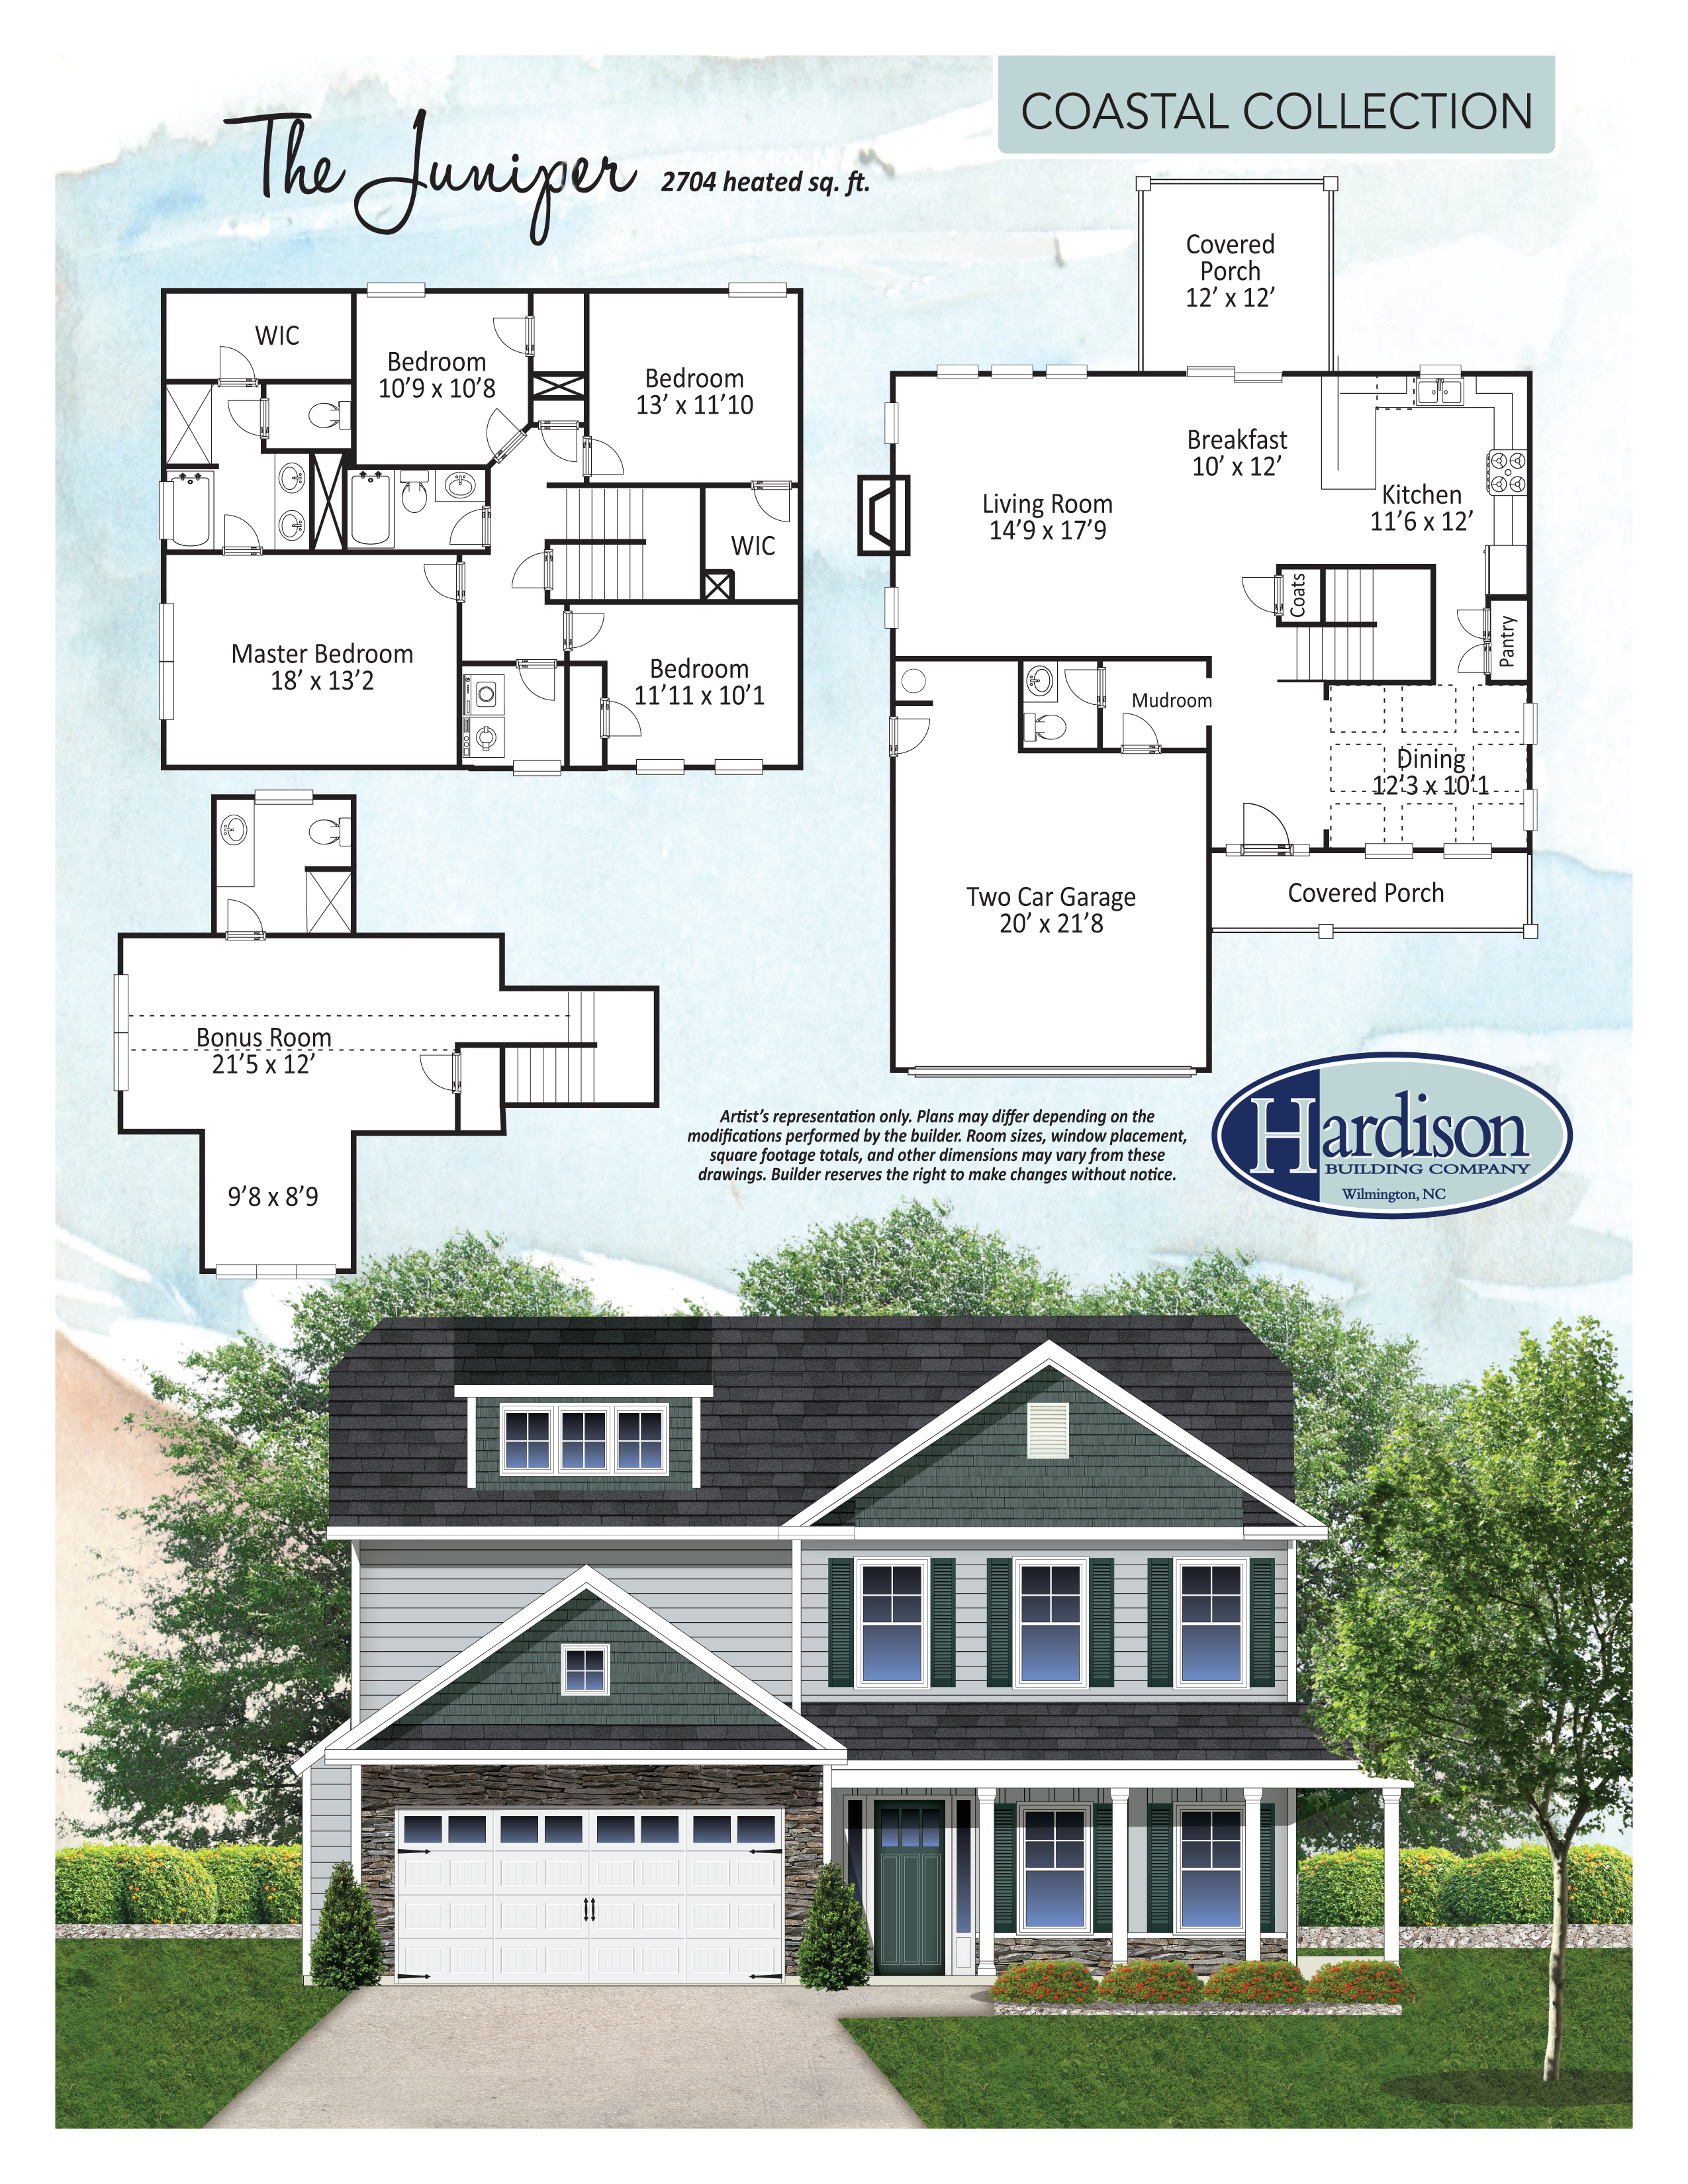 10x10 Room Layout 1212 Bedroom Furniture Layout Indiepedia Org